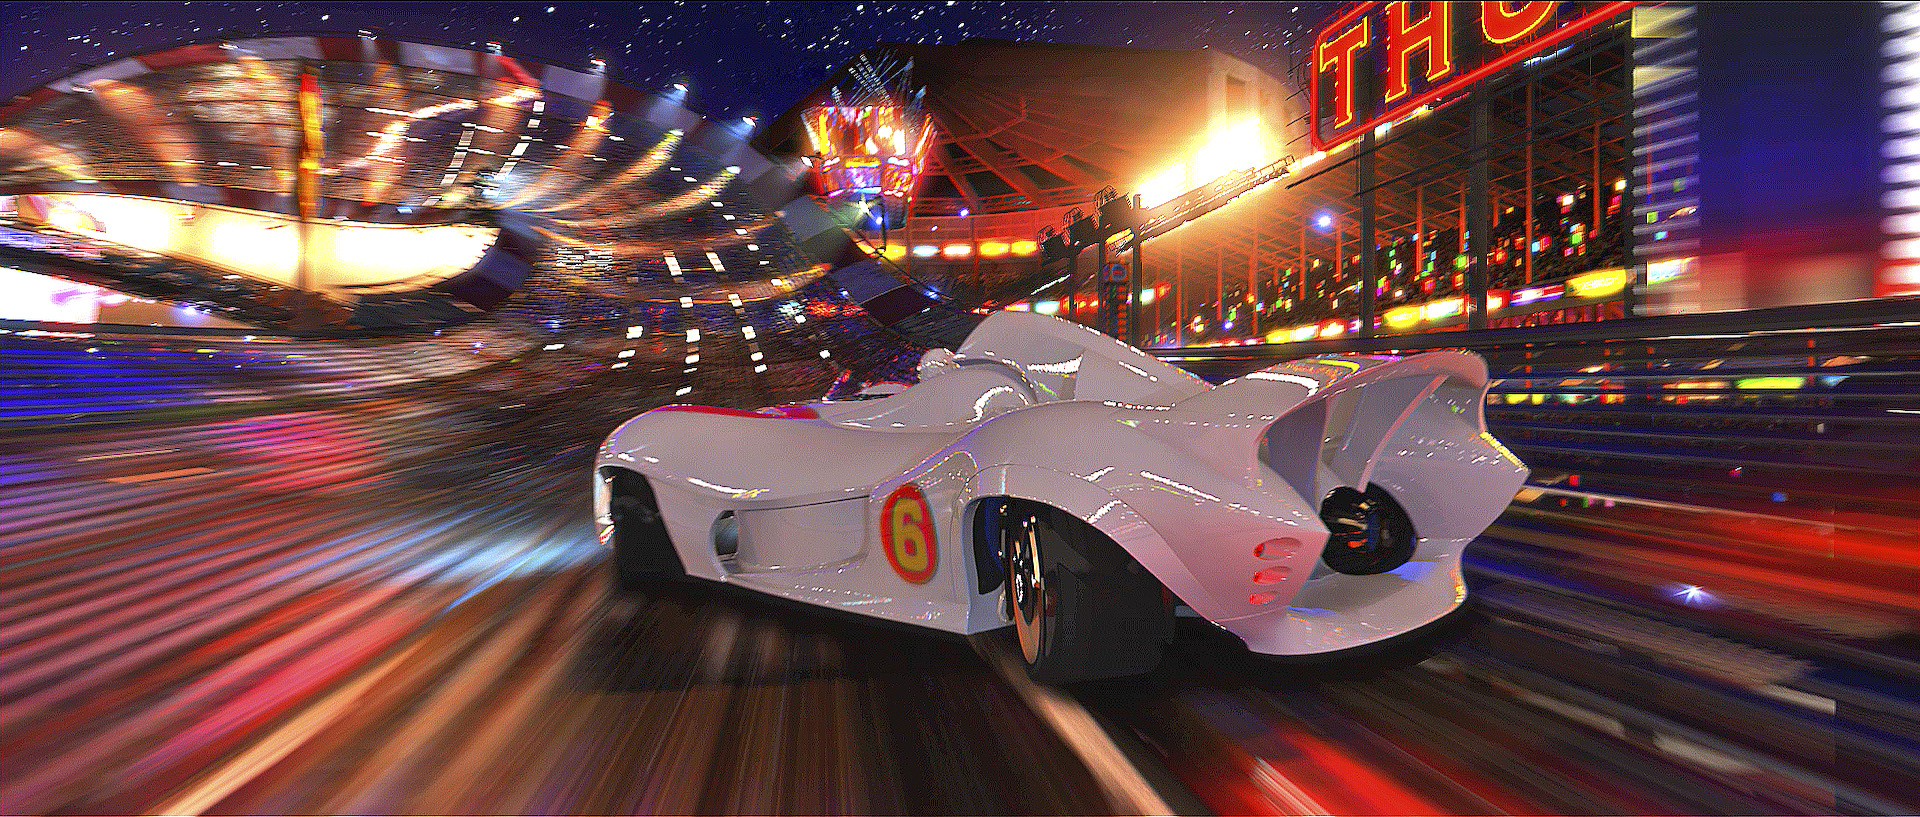 Speed Racer movies in Australia